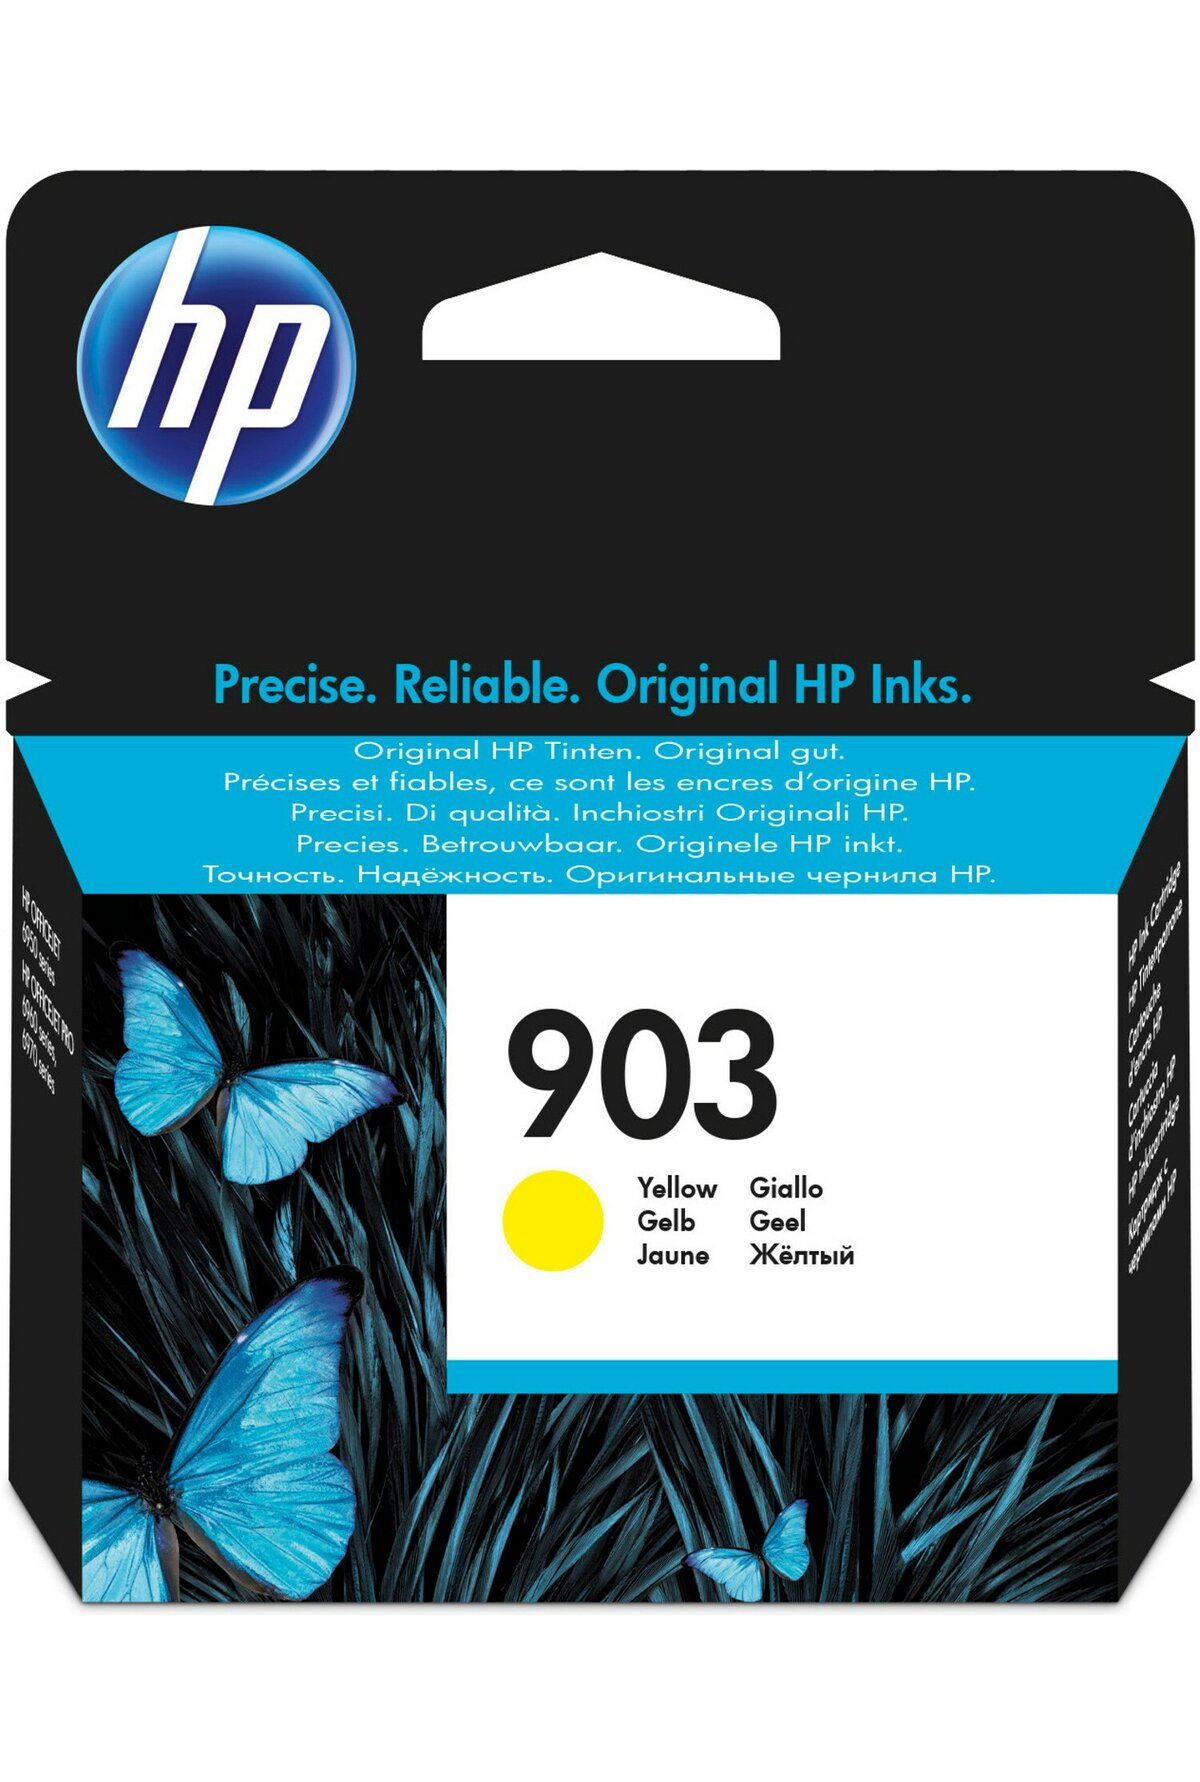 HP 903 Yellow